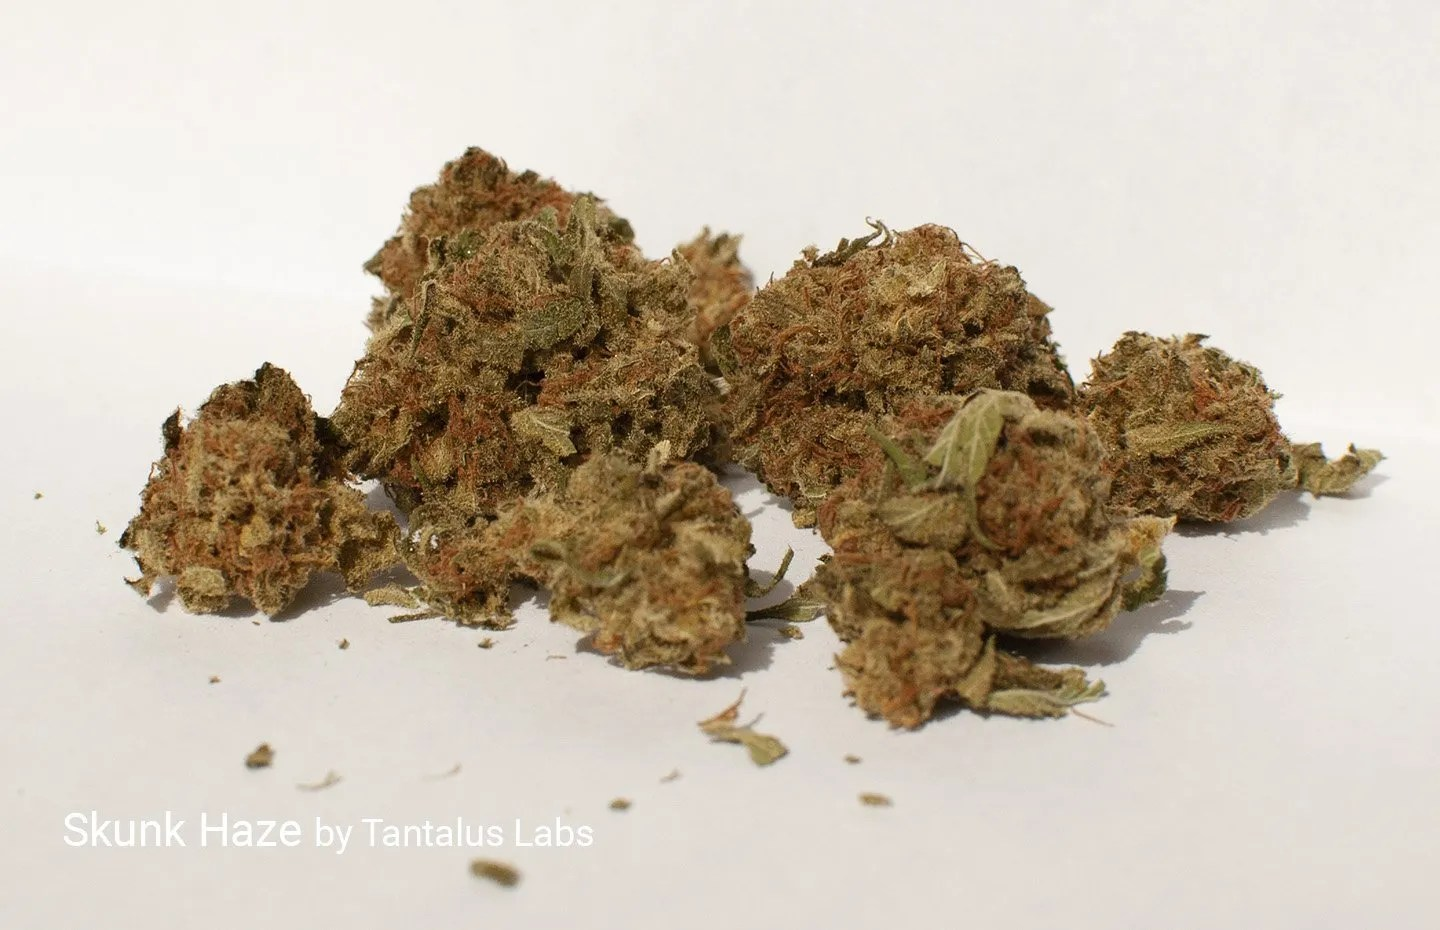 4.58% THC 7.88% CBD Skunk Haze by Tantalus Labs